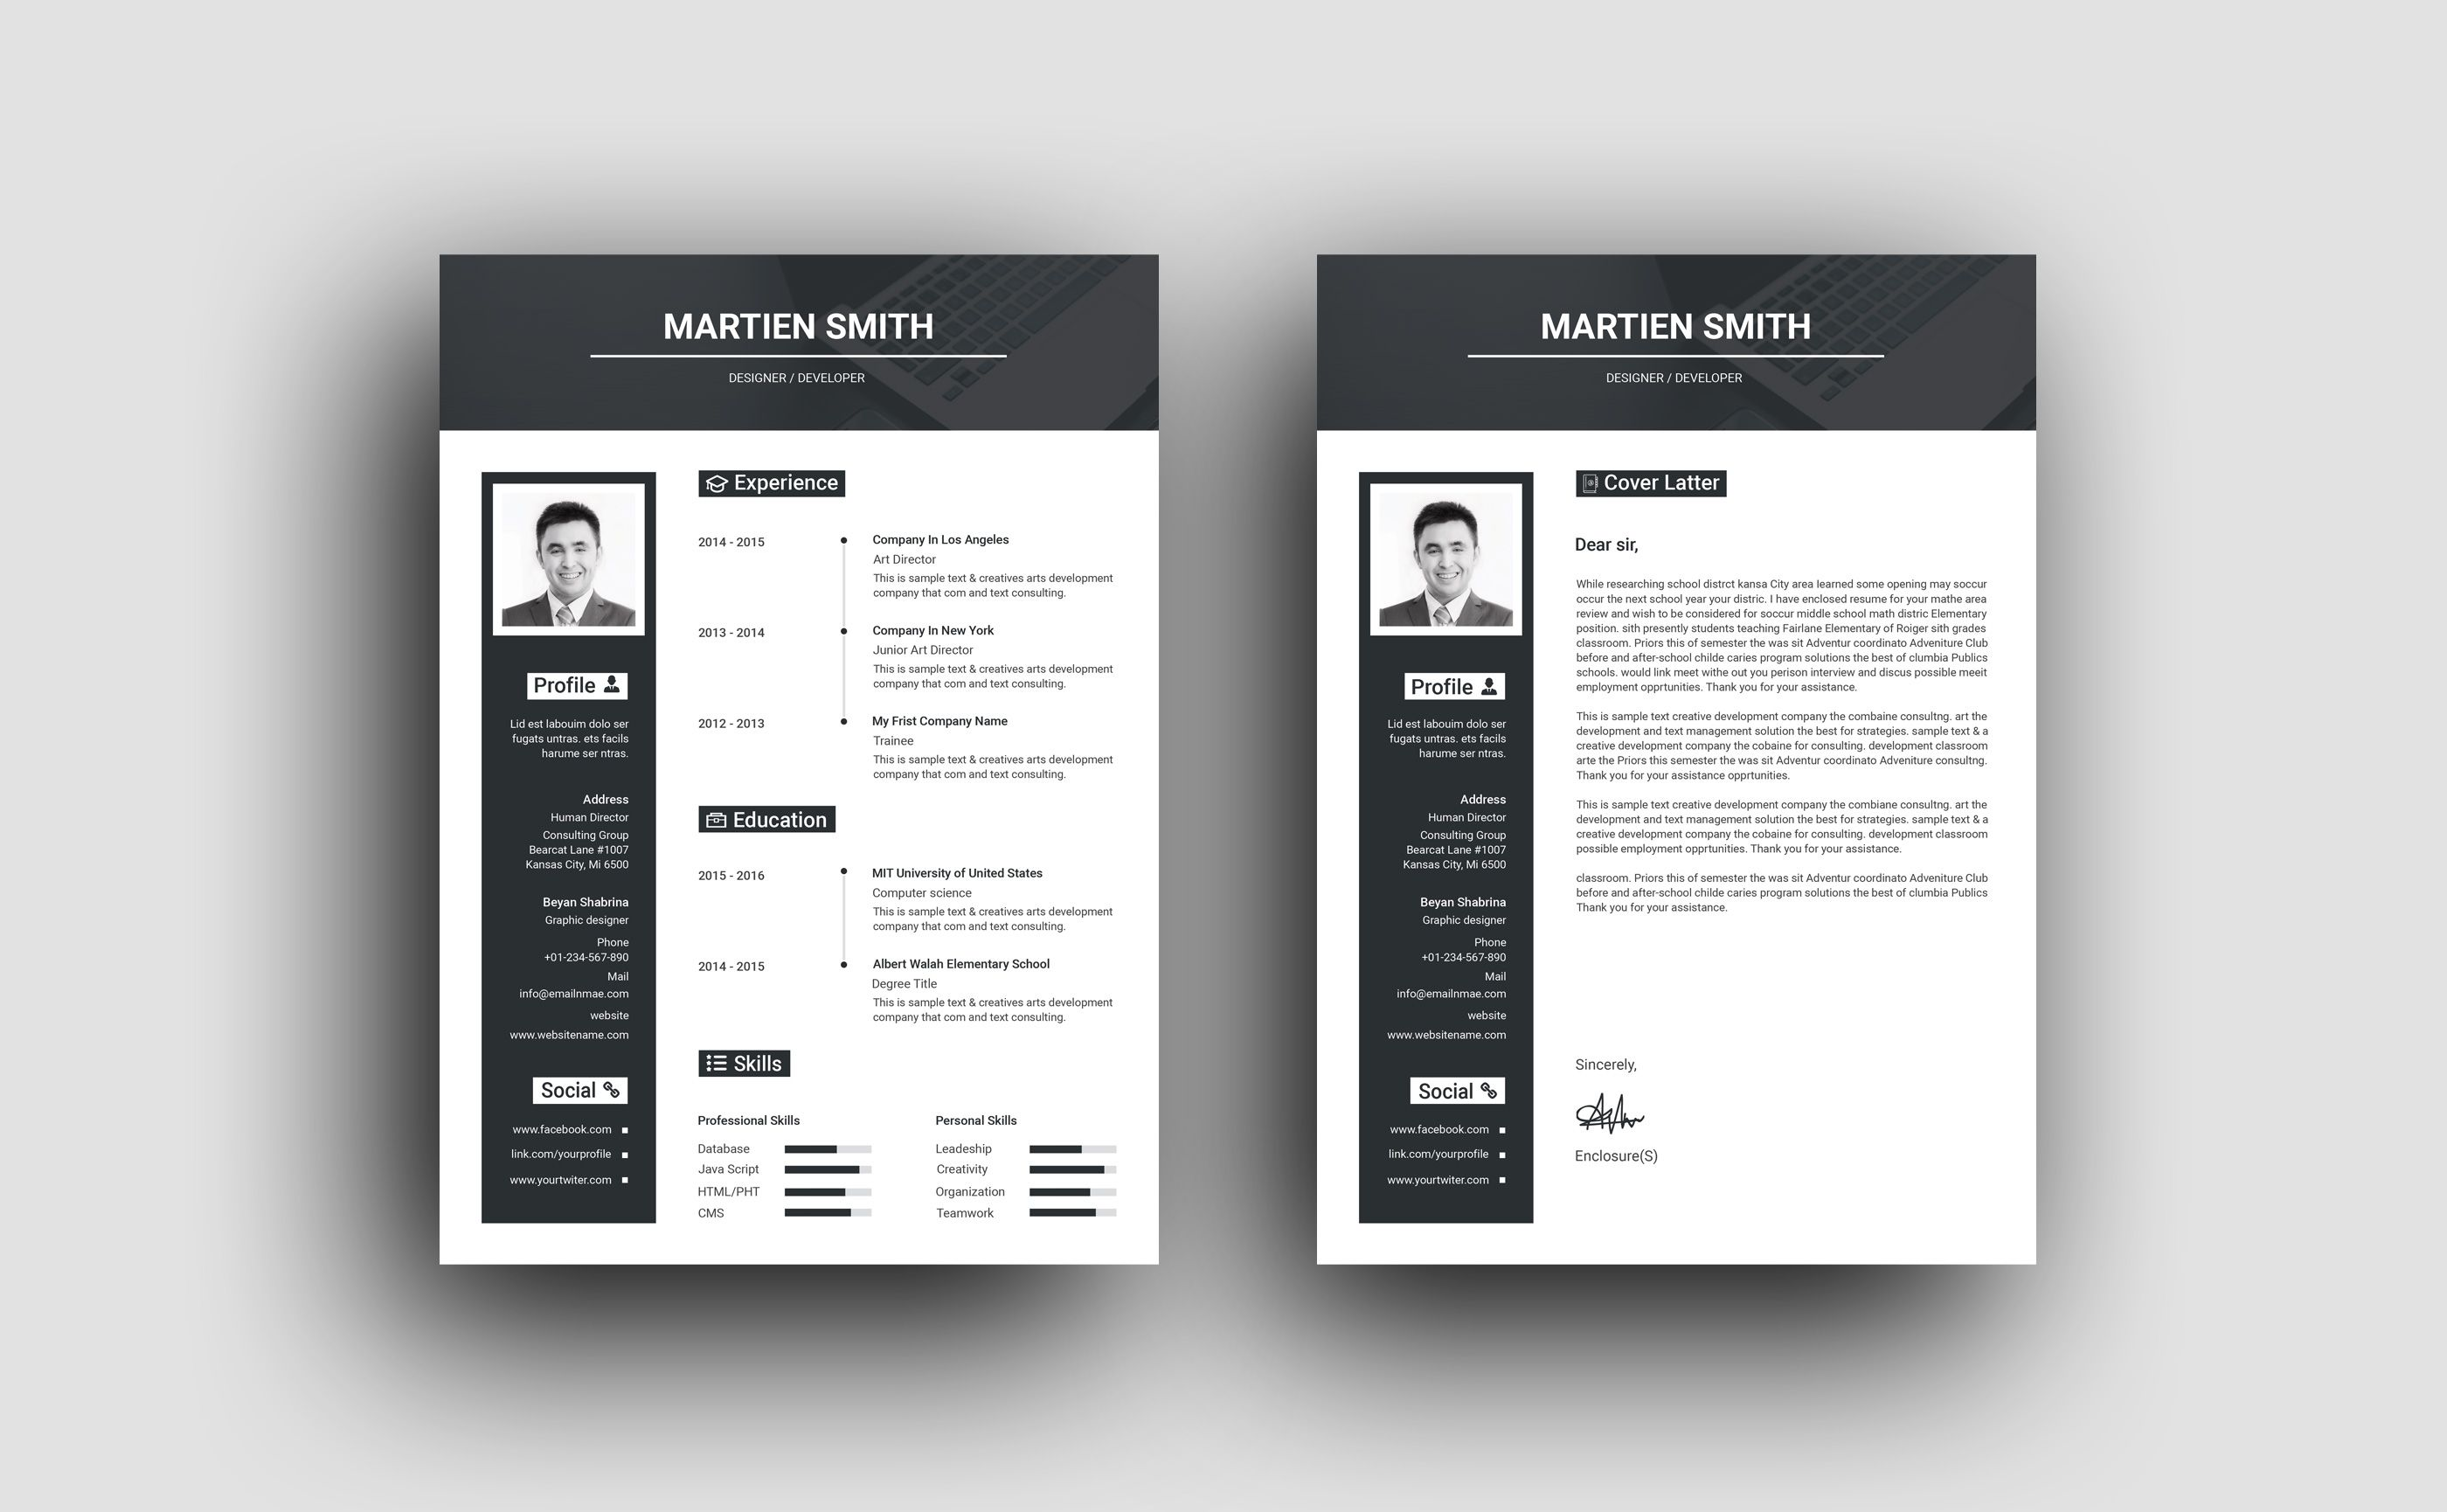 Hades Elegant Professional Resume Template - Resume template professional, Resume template, Professional resume, Resume, Resume design template, Resume template free - Hades Elegant Professional Resume Template  The perfect way to make the best impression  Strong typographic structure and very easy to use and customize    The resume have a very organized  The resume template is in Photoshop PSD and MS Word DOCX formats